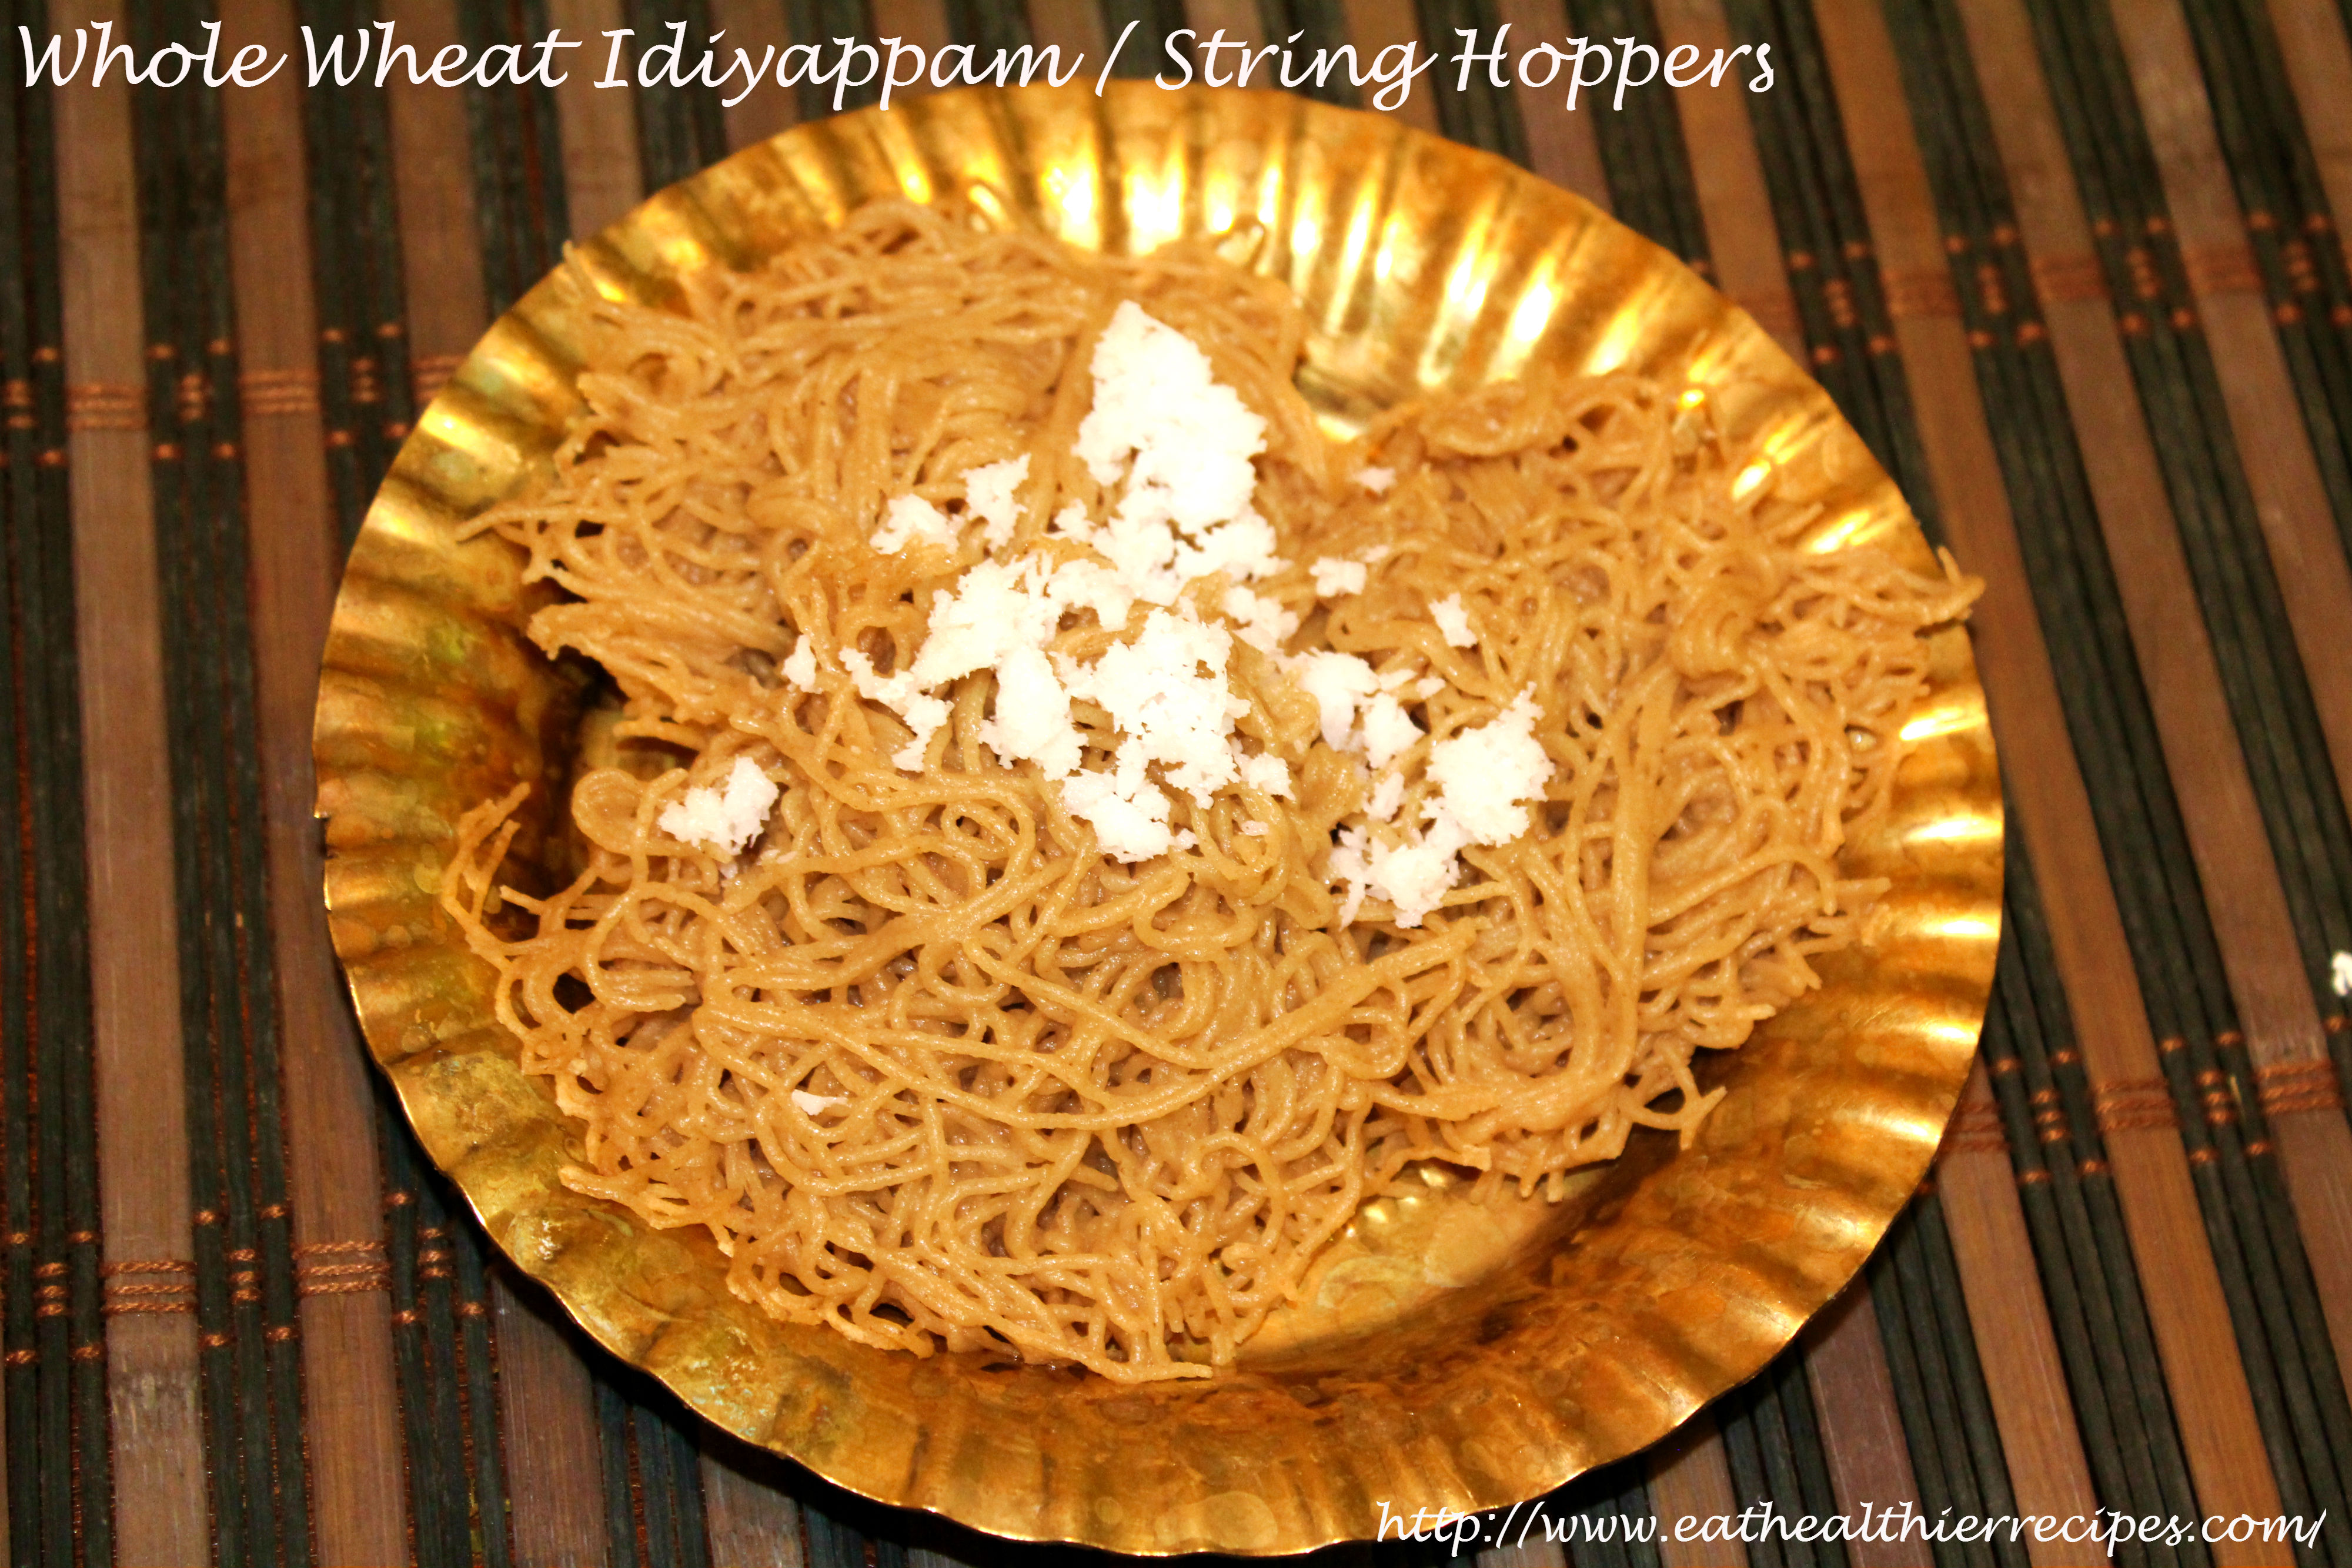 Whole Wheat Idiyappam/ String Hoppers